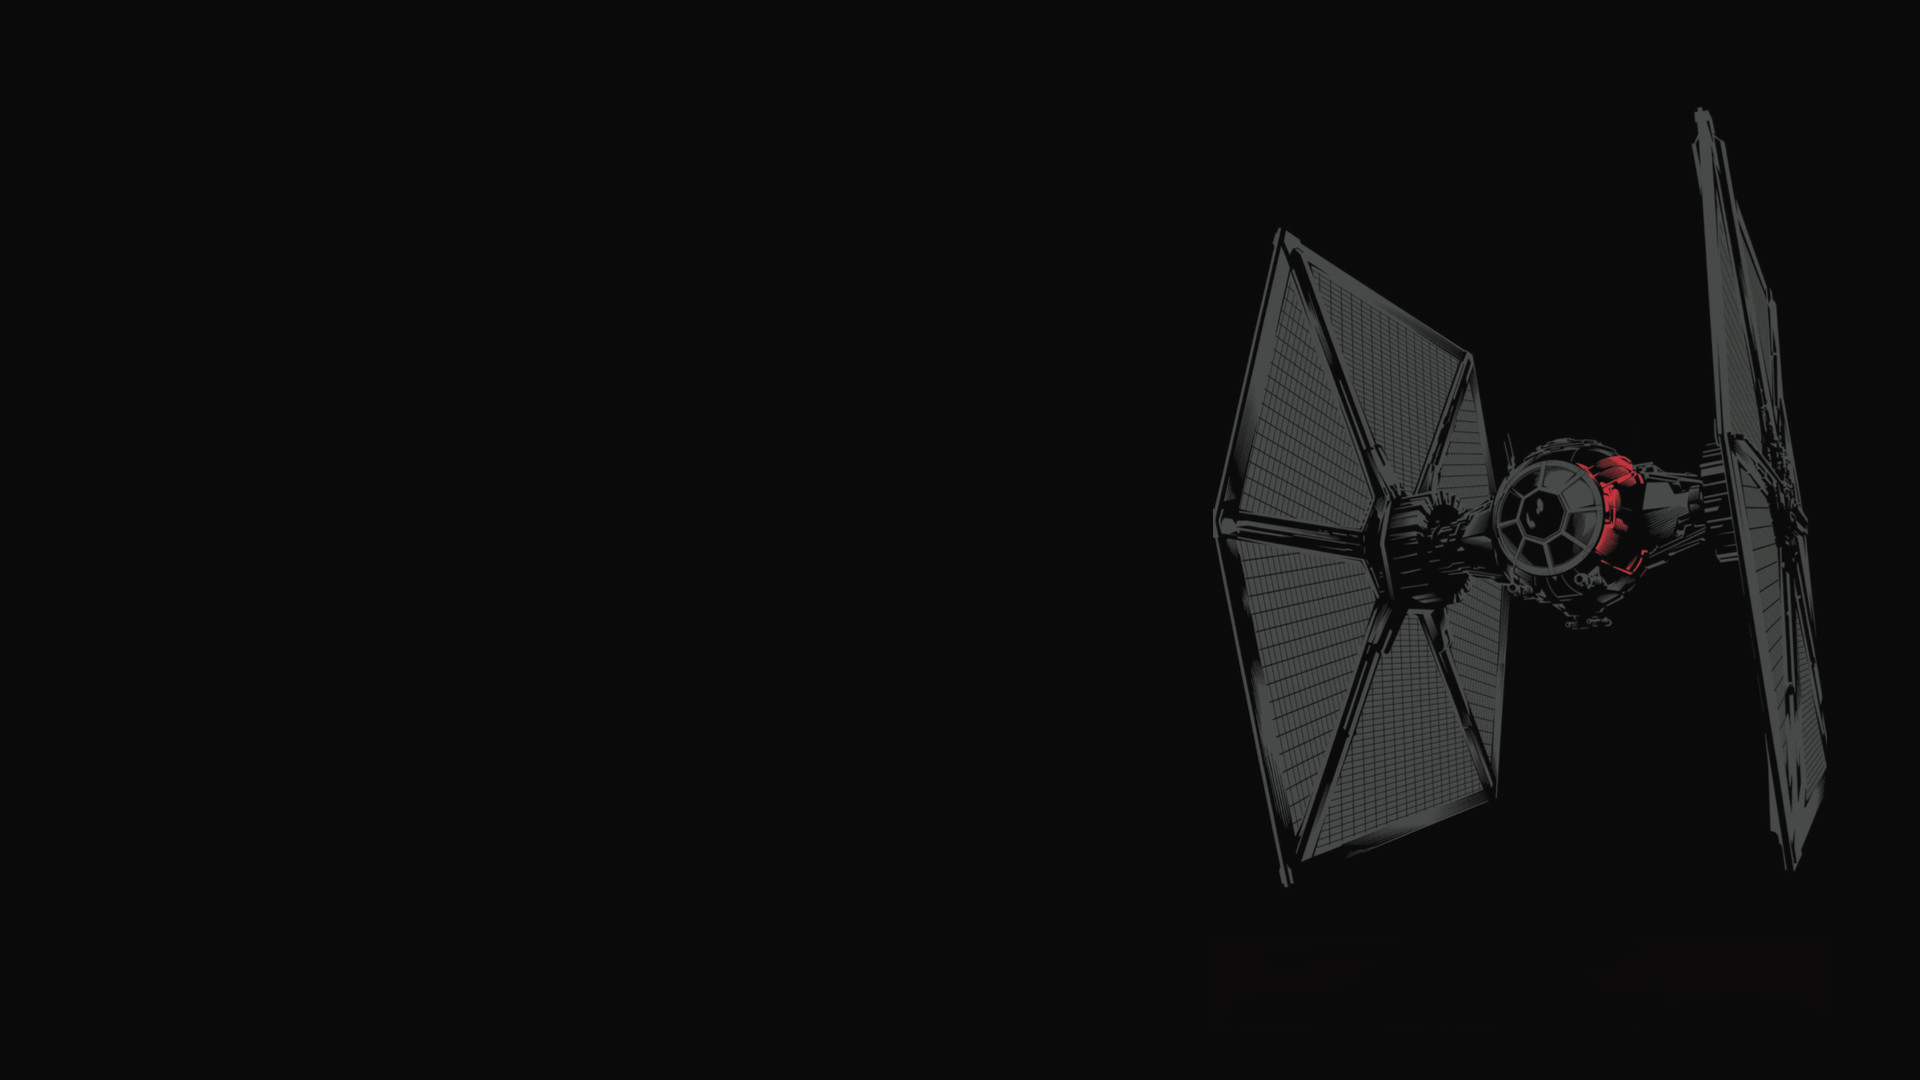 I made a wallpaper out of that TIE Fighter image from the toy leak. Enjoy!